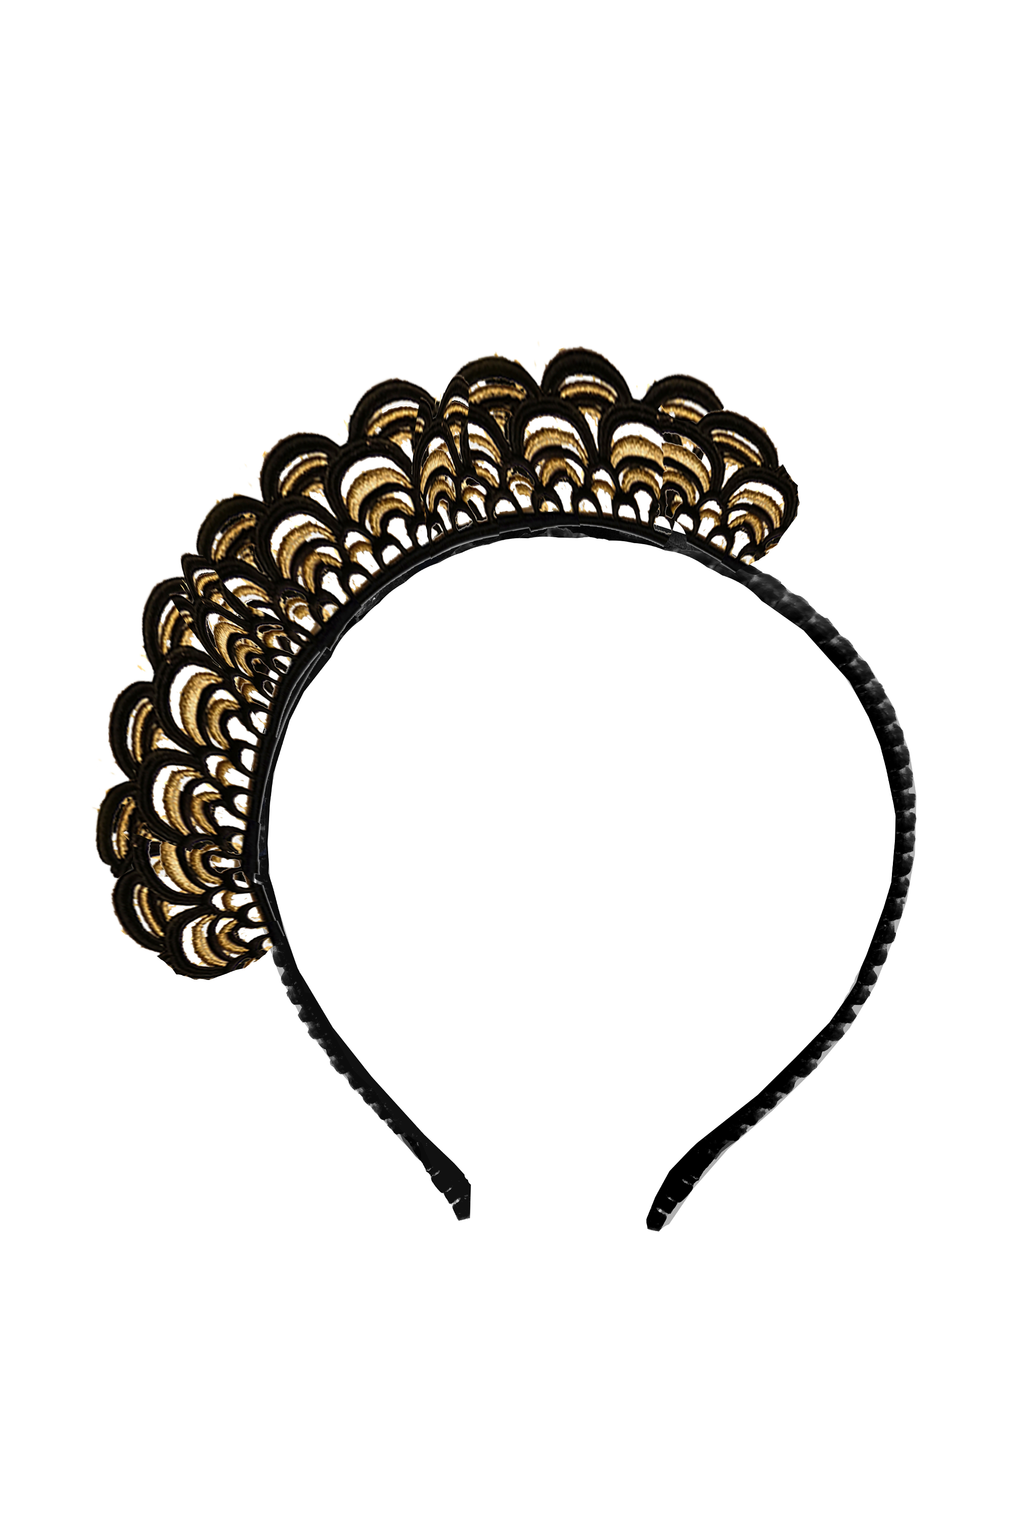 Black Golden Lace Headband - LAZY FRANCIS - Shop in store at 406 Kings Road, Chelsea, London or shop online at www.lazyfrancis.com